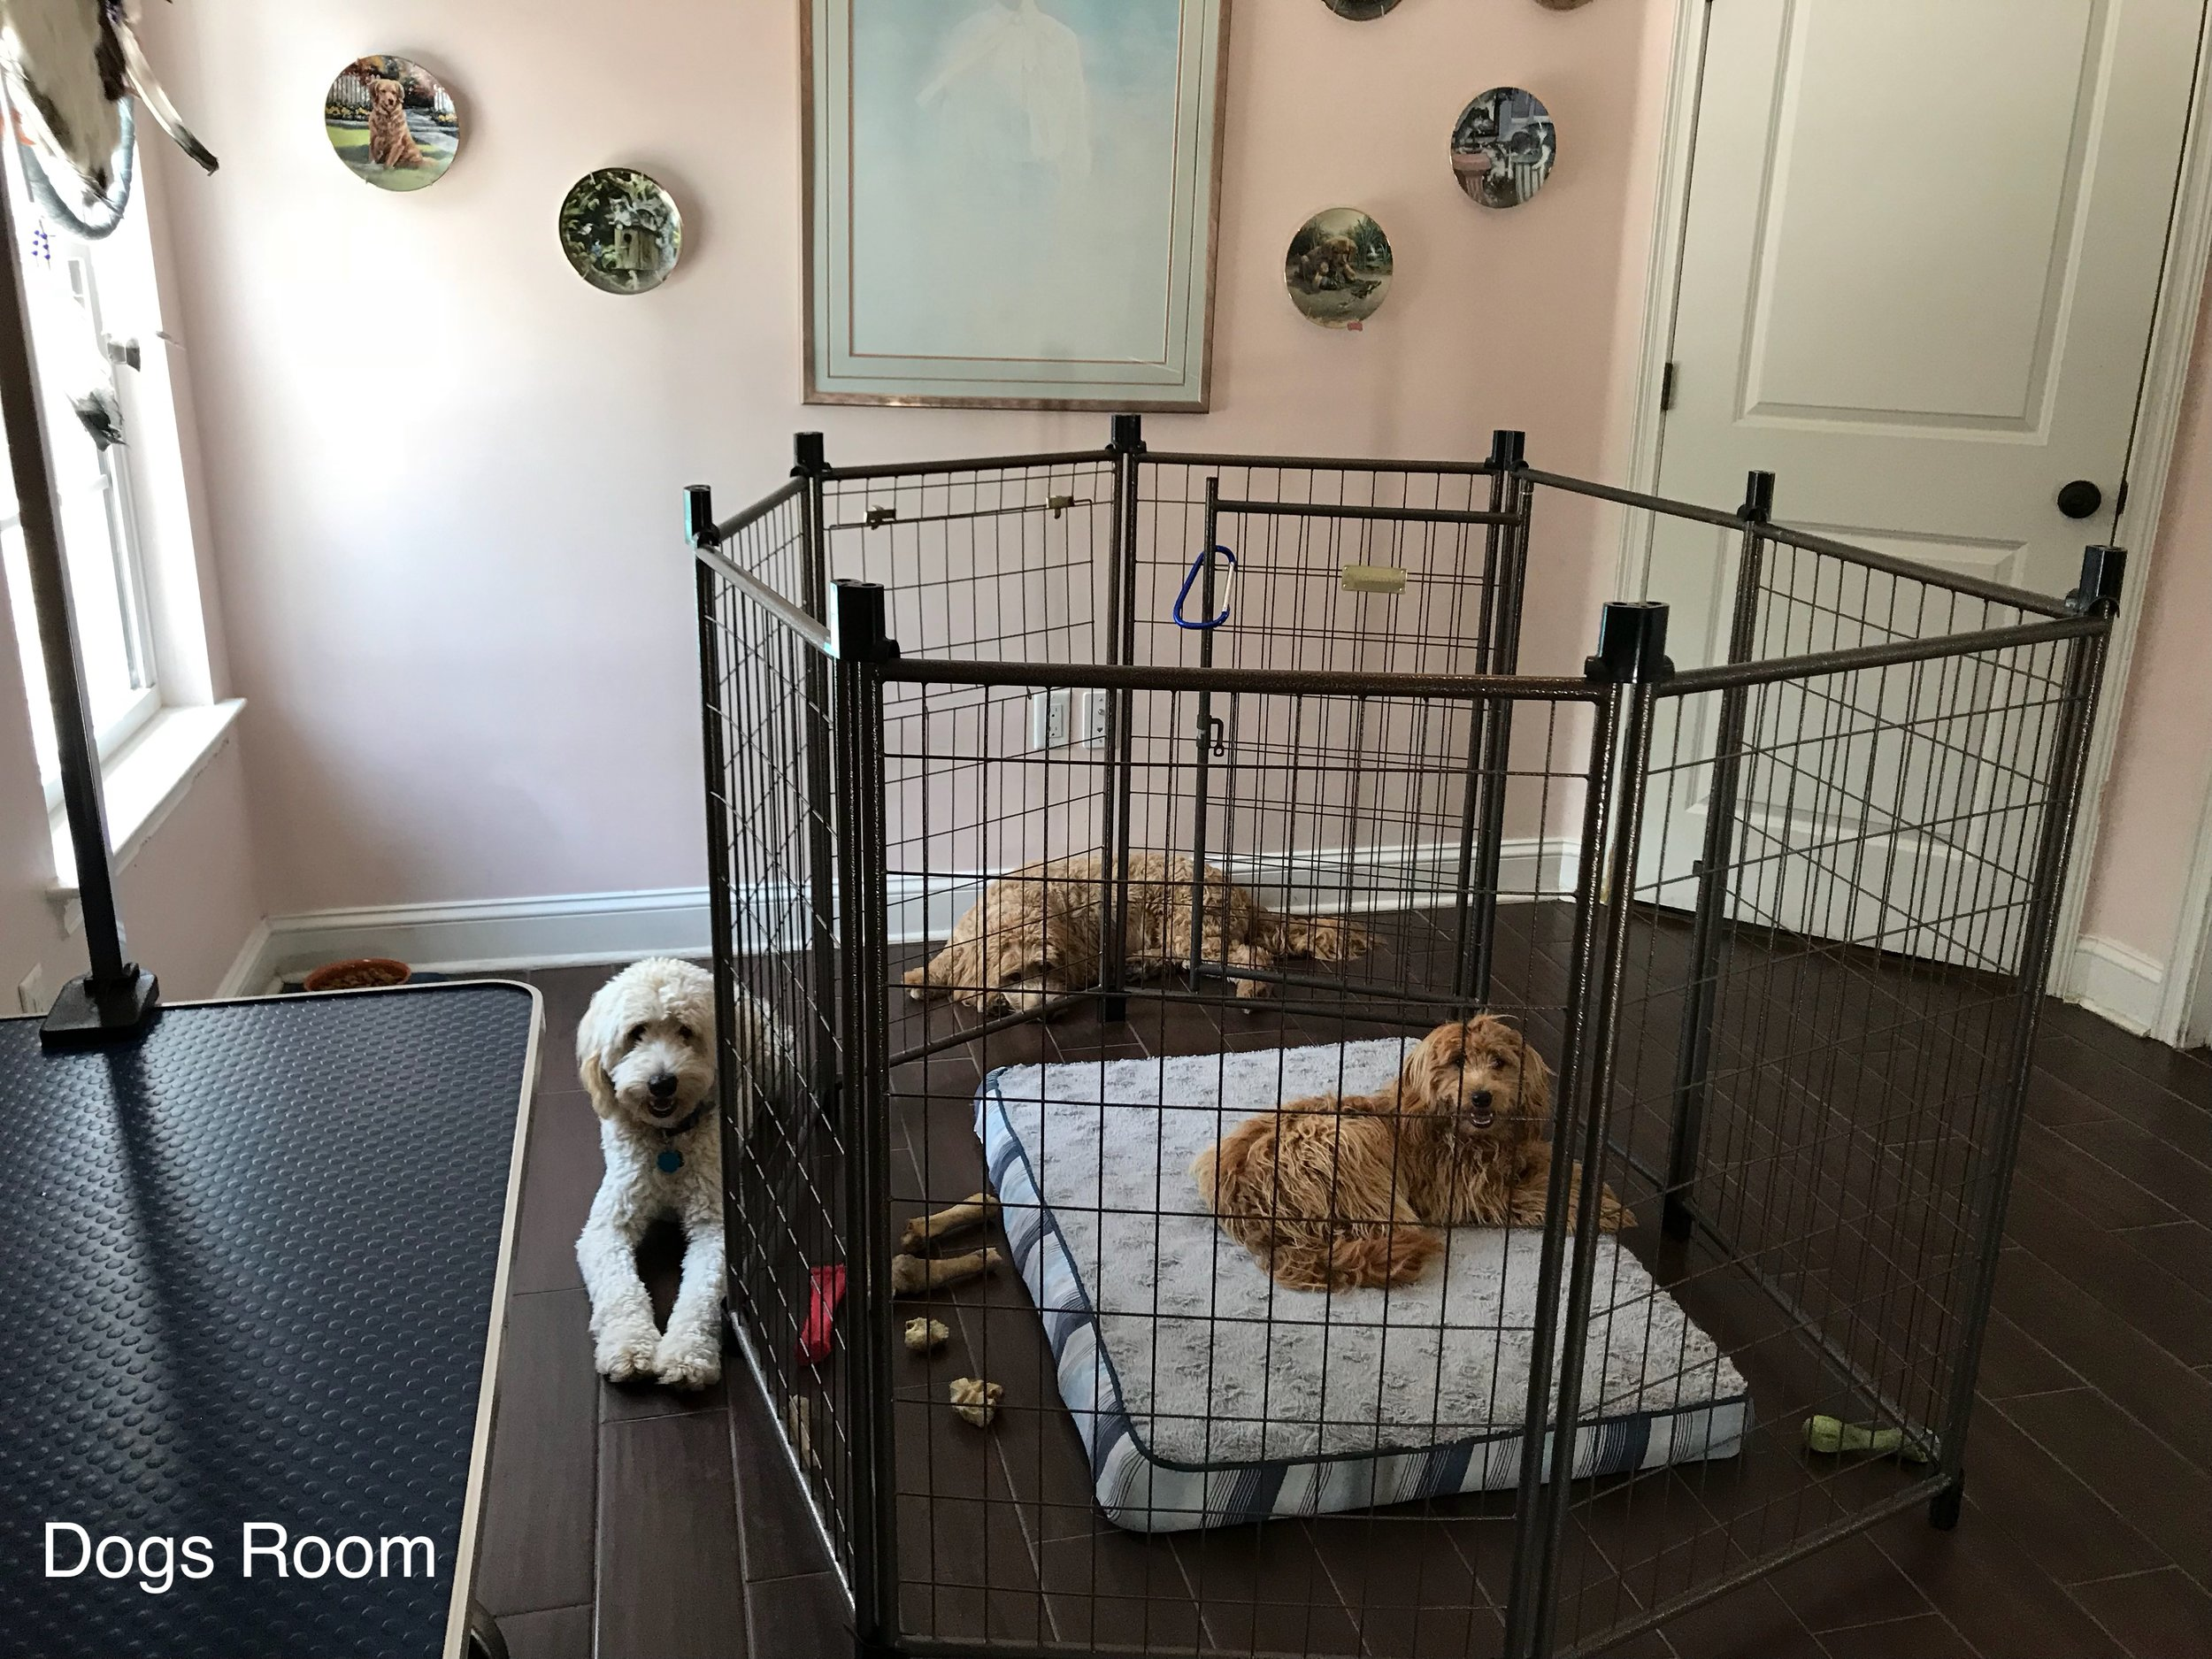 The Dog's Room